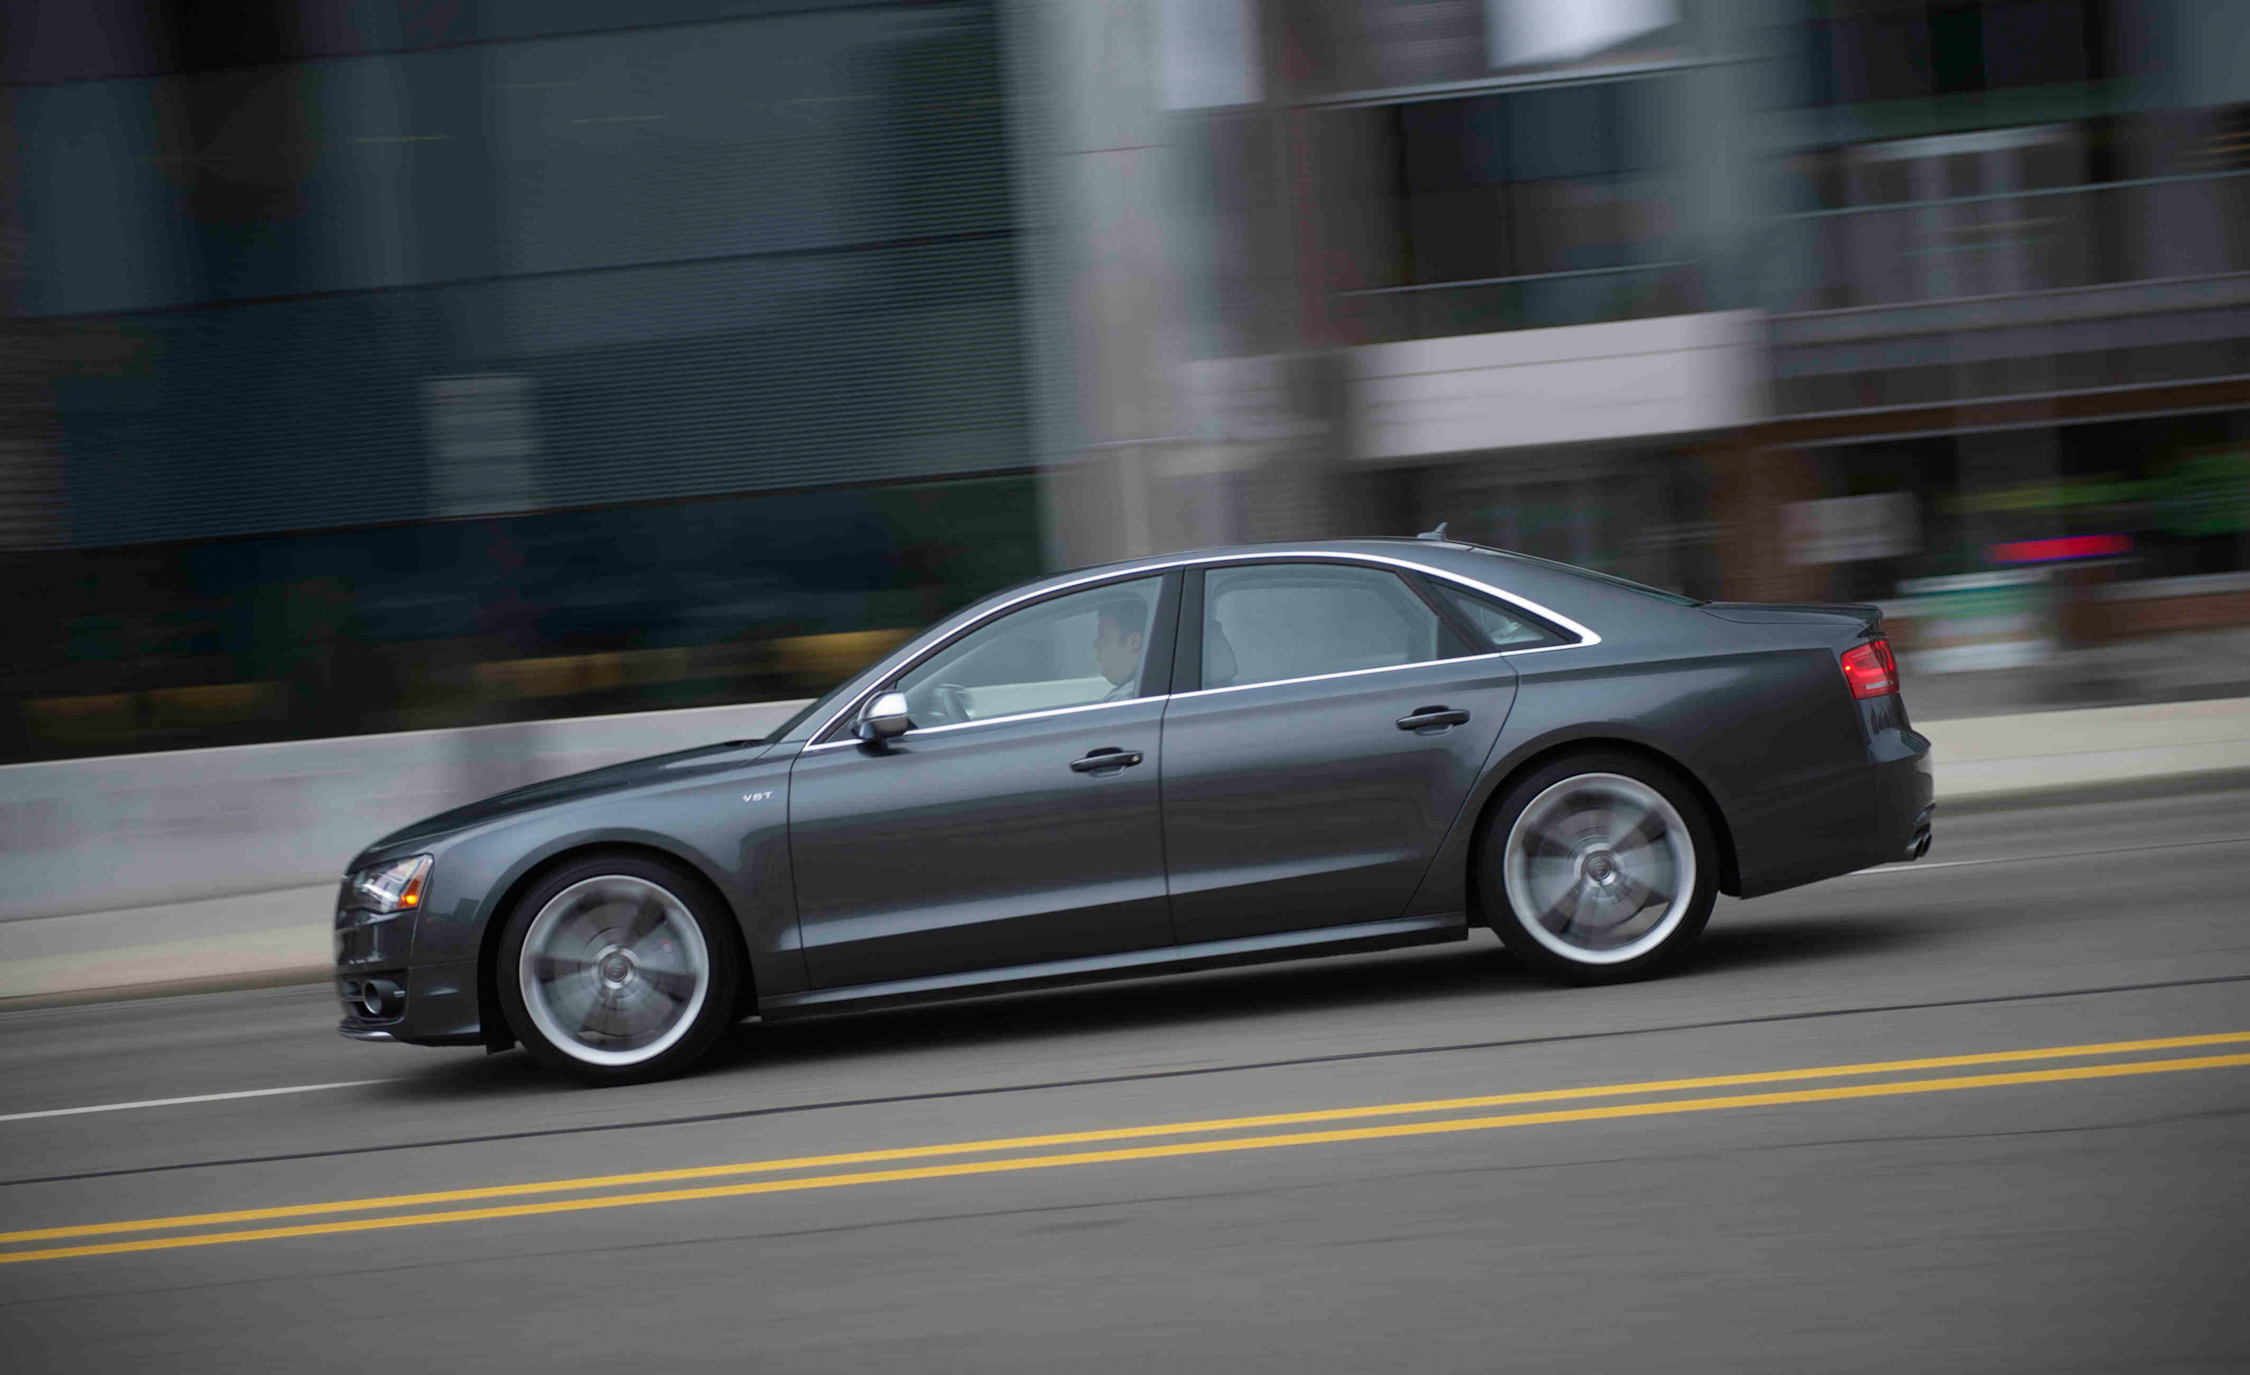 2013 Audi S8 Test Drive Side View (View 6 of 25)